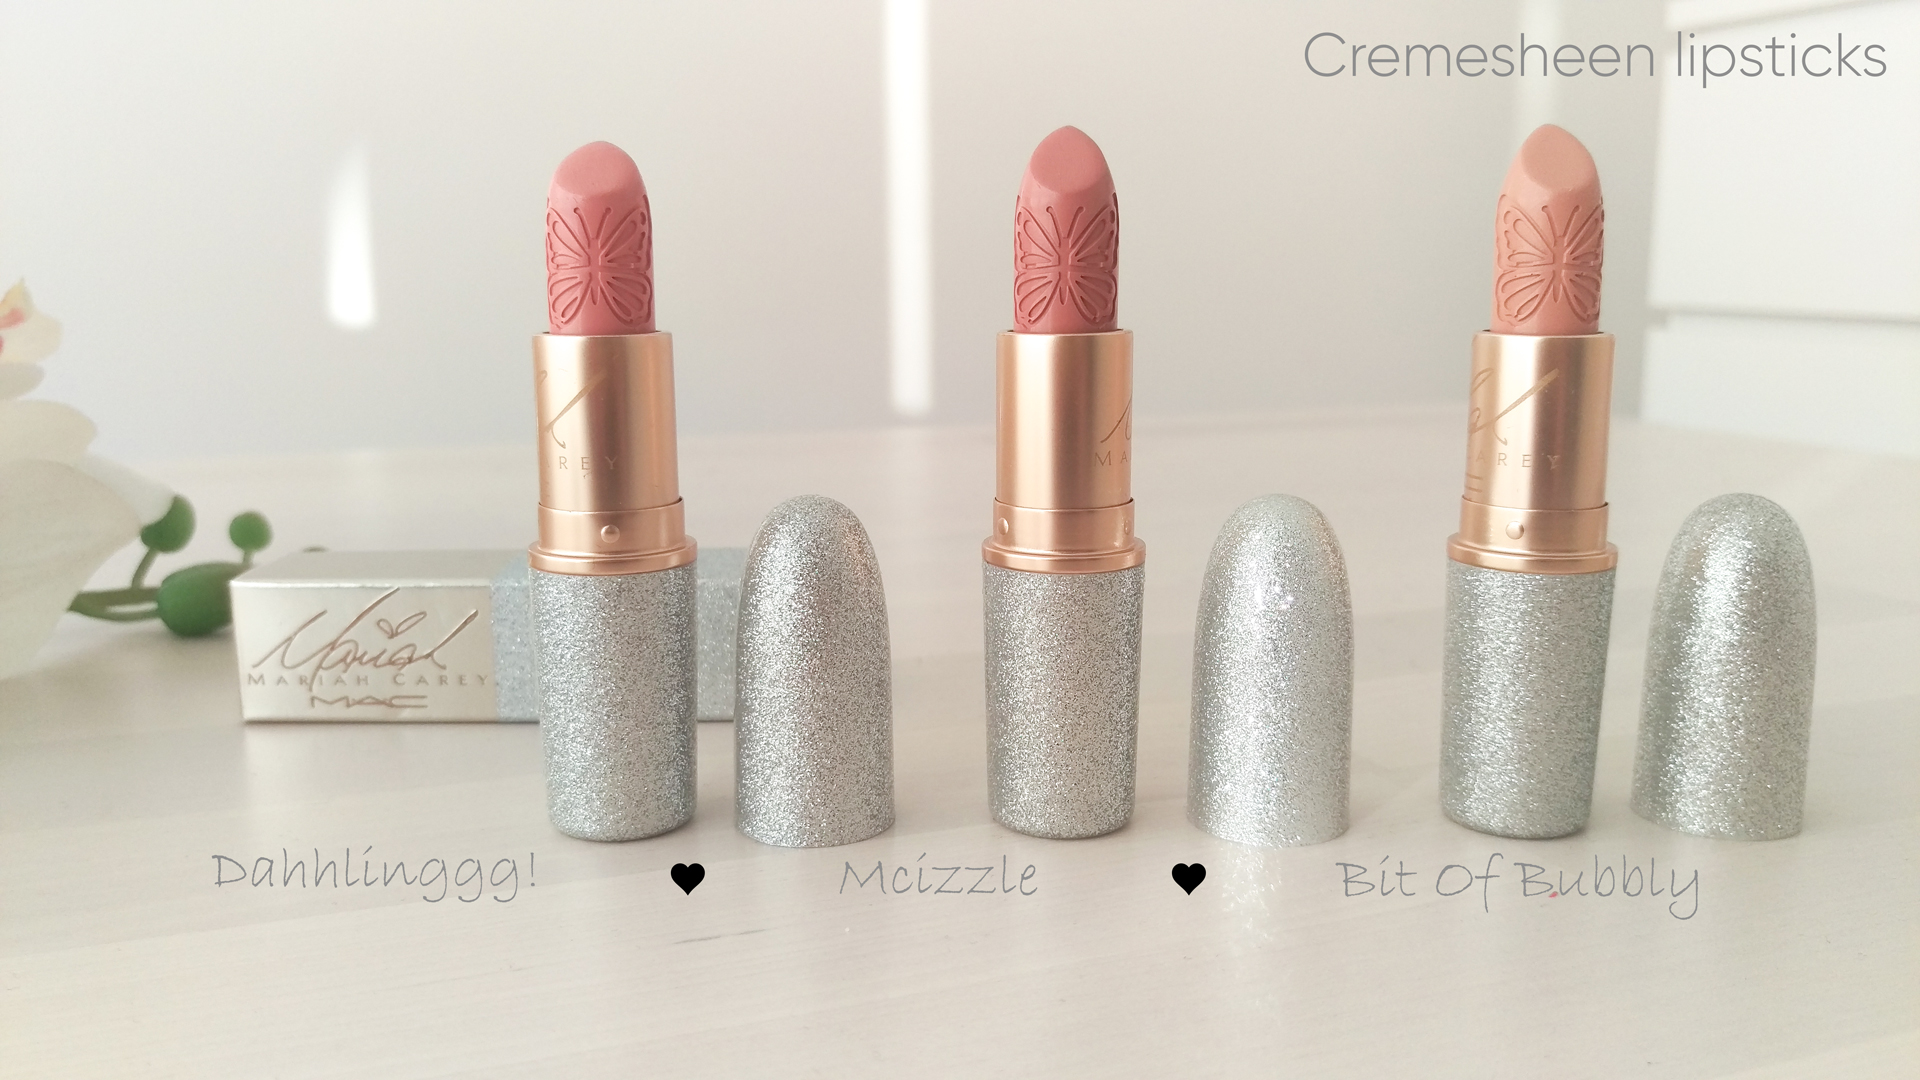 Mac Mariah Carey Collection Kollektion Lipstick Cremesheen Dahhlinggg! Mcizzle Bit Of Bubbly